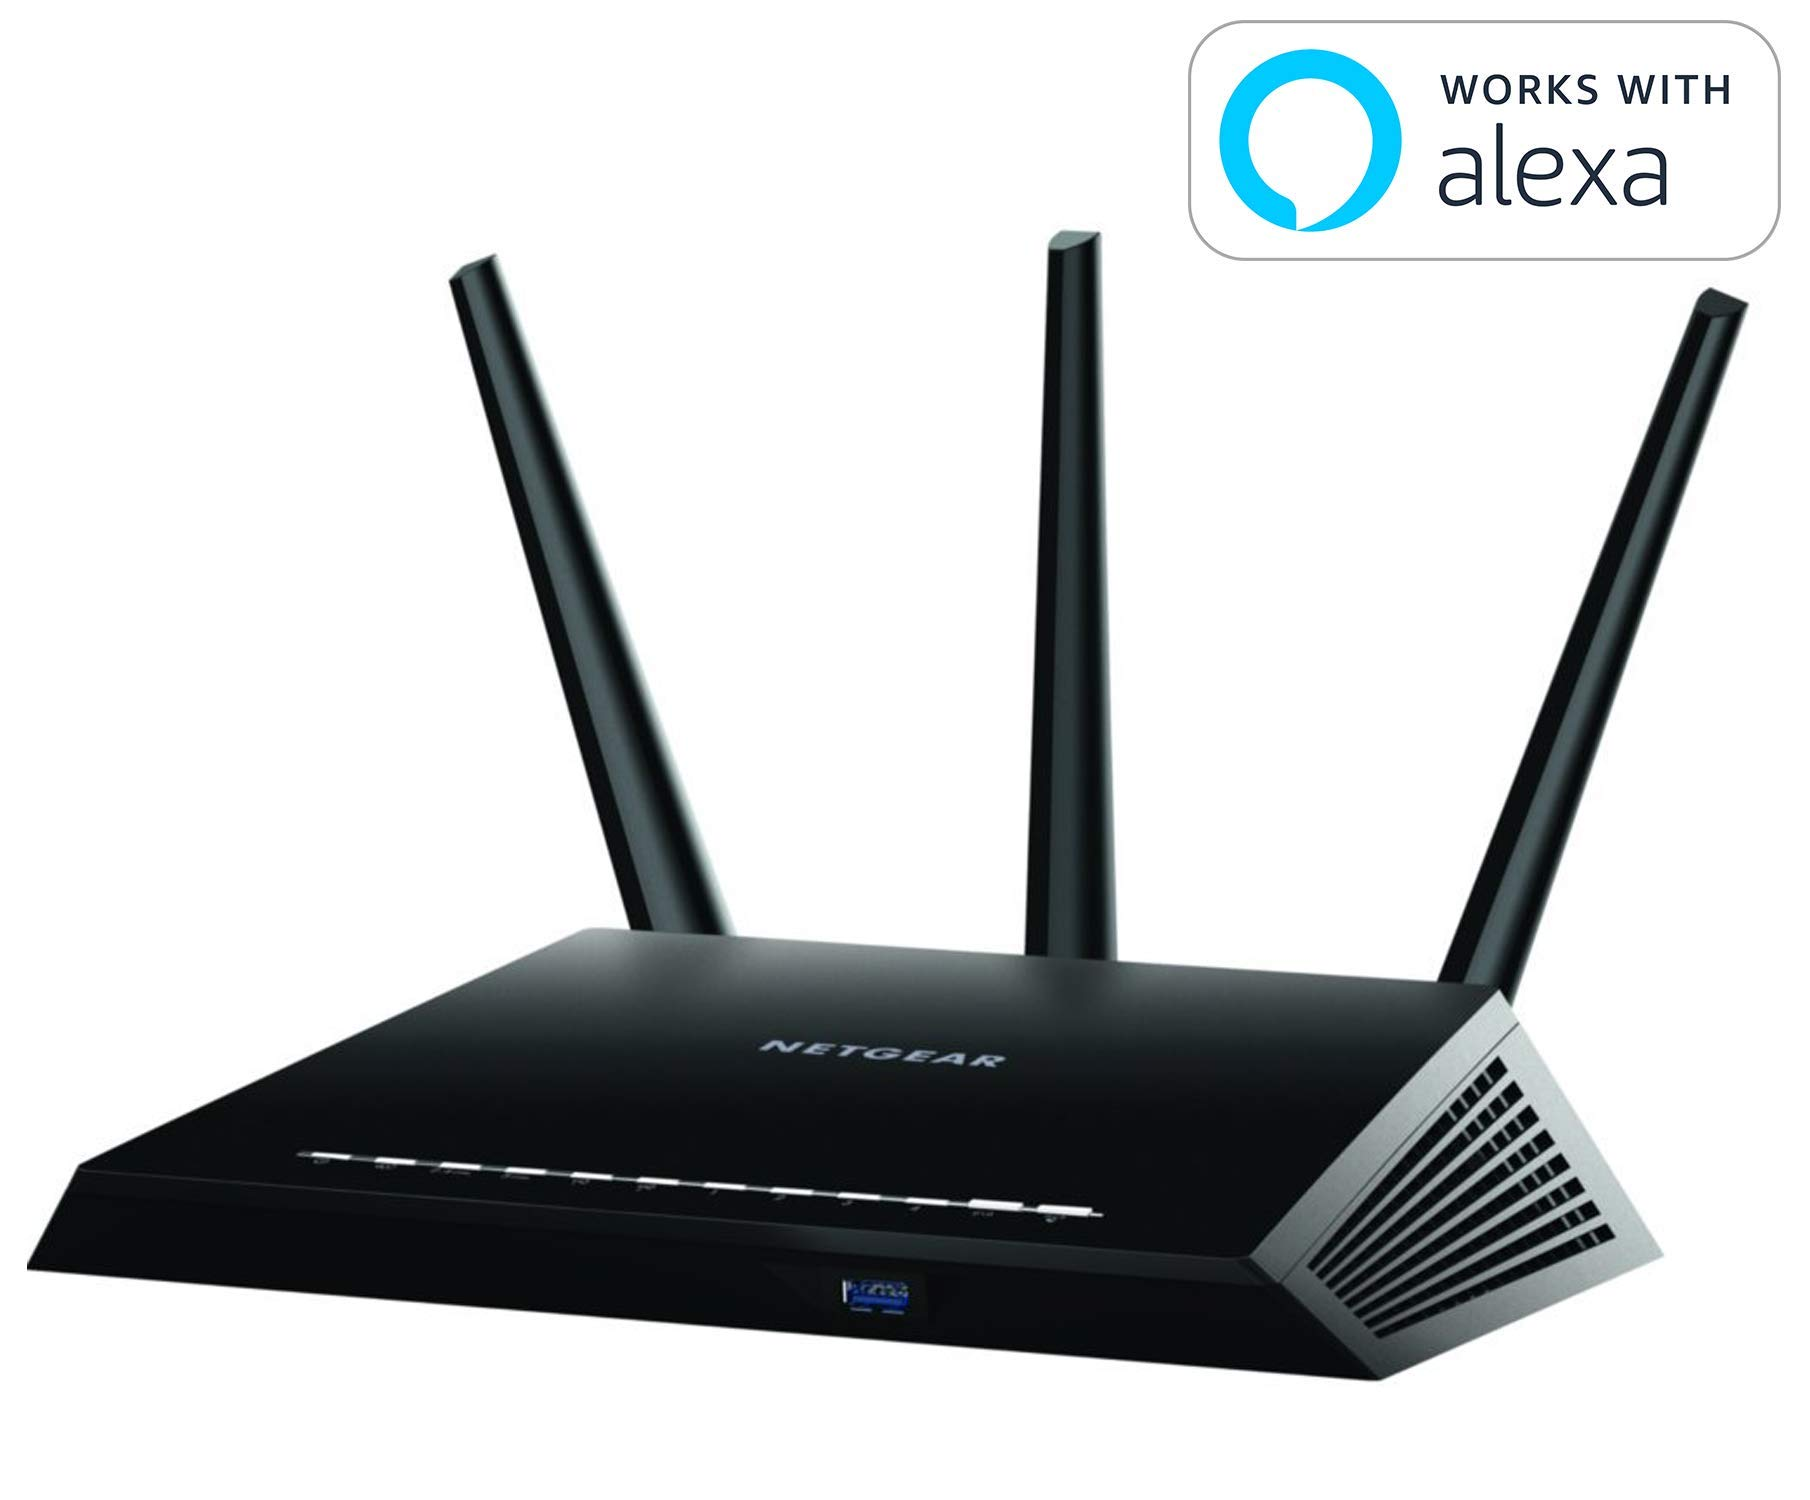 NETGEAR Nighthawk Smart WiFi Router (R7000) - AC1900 Wireless Speed (up to 1900 Mbps) | Up to 1800 sq ft Coverage & 30 Devices | 4 x 1G Ethernet and 2 USB ports | Armor Security by NETGEAR